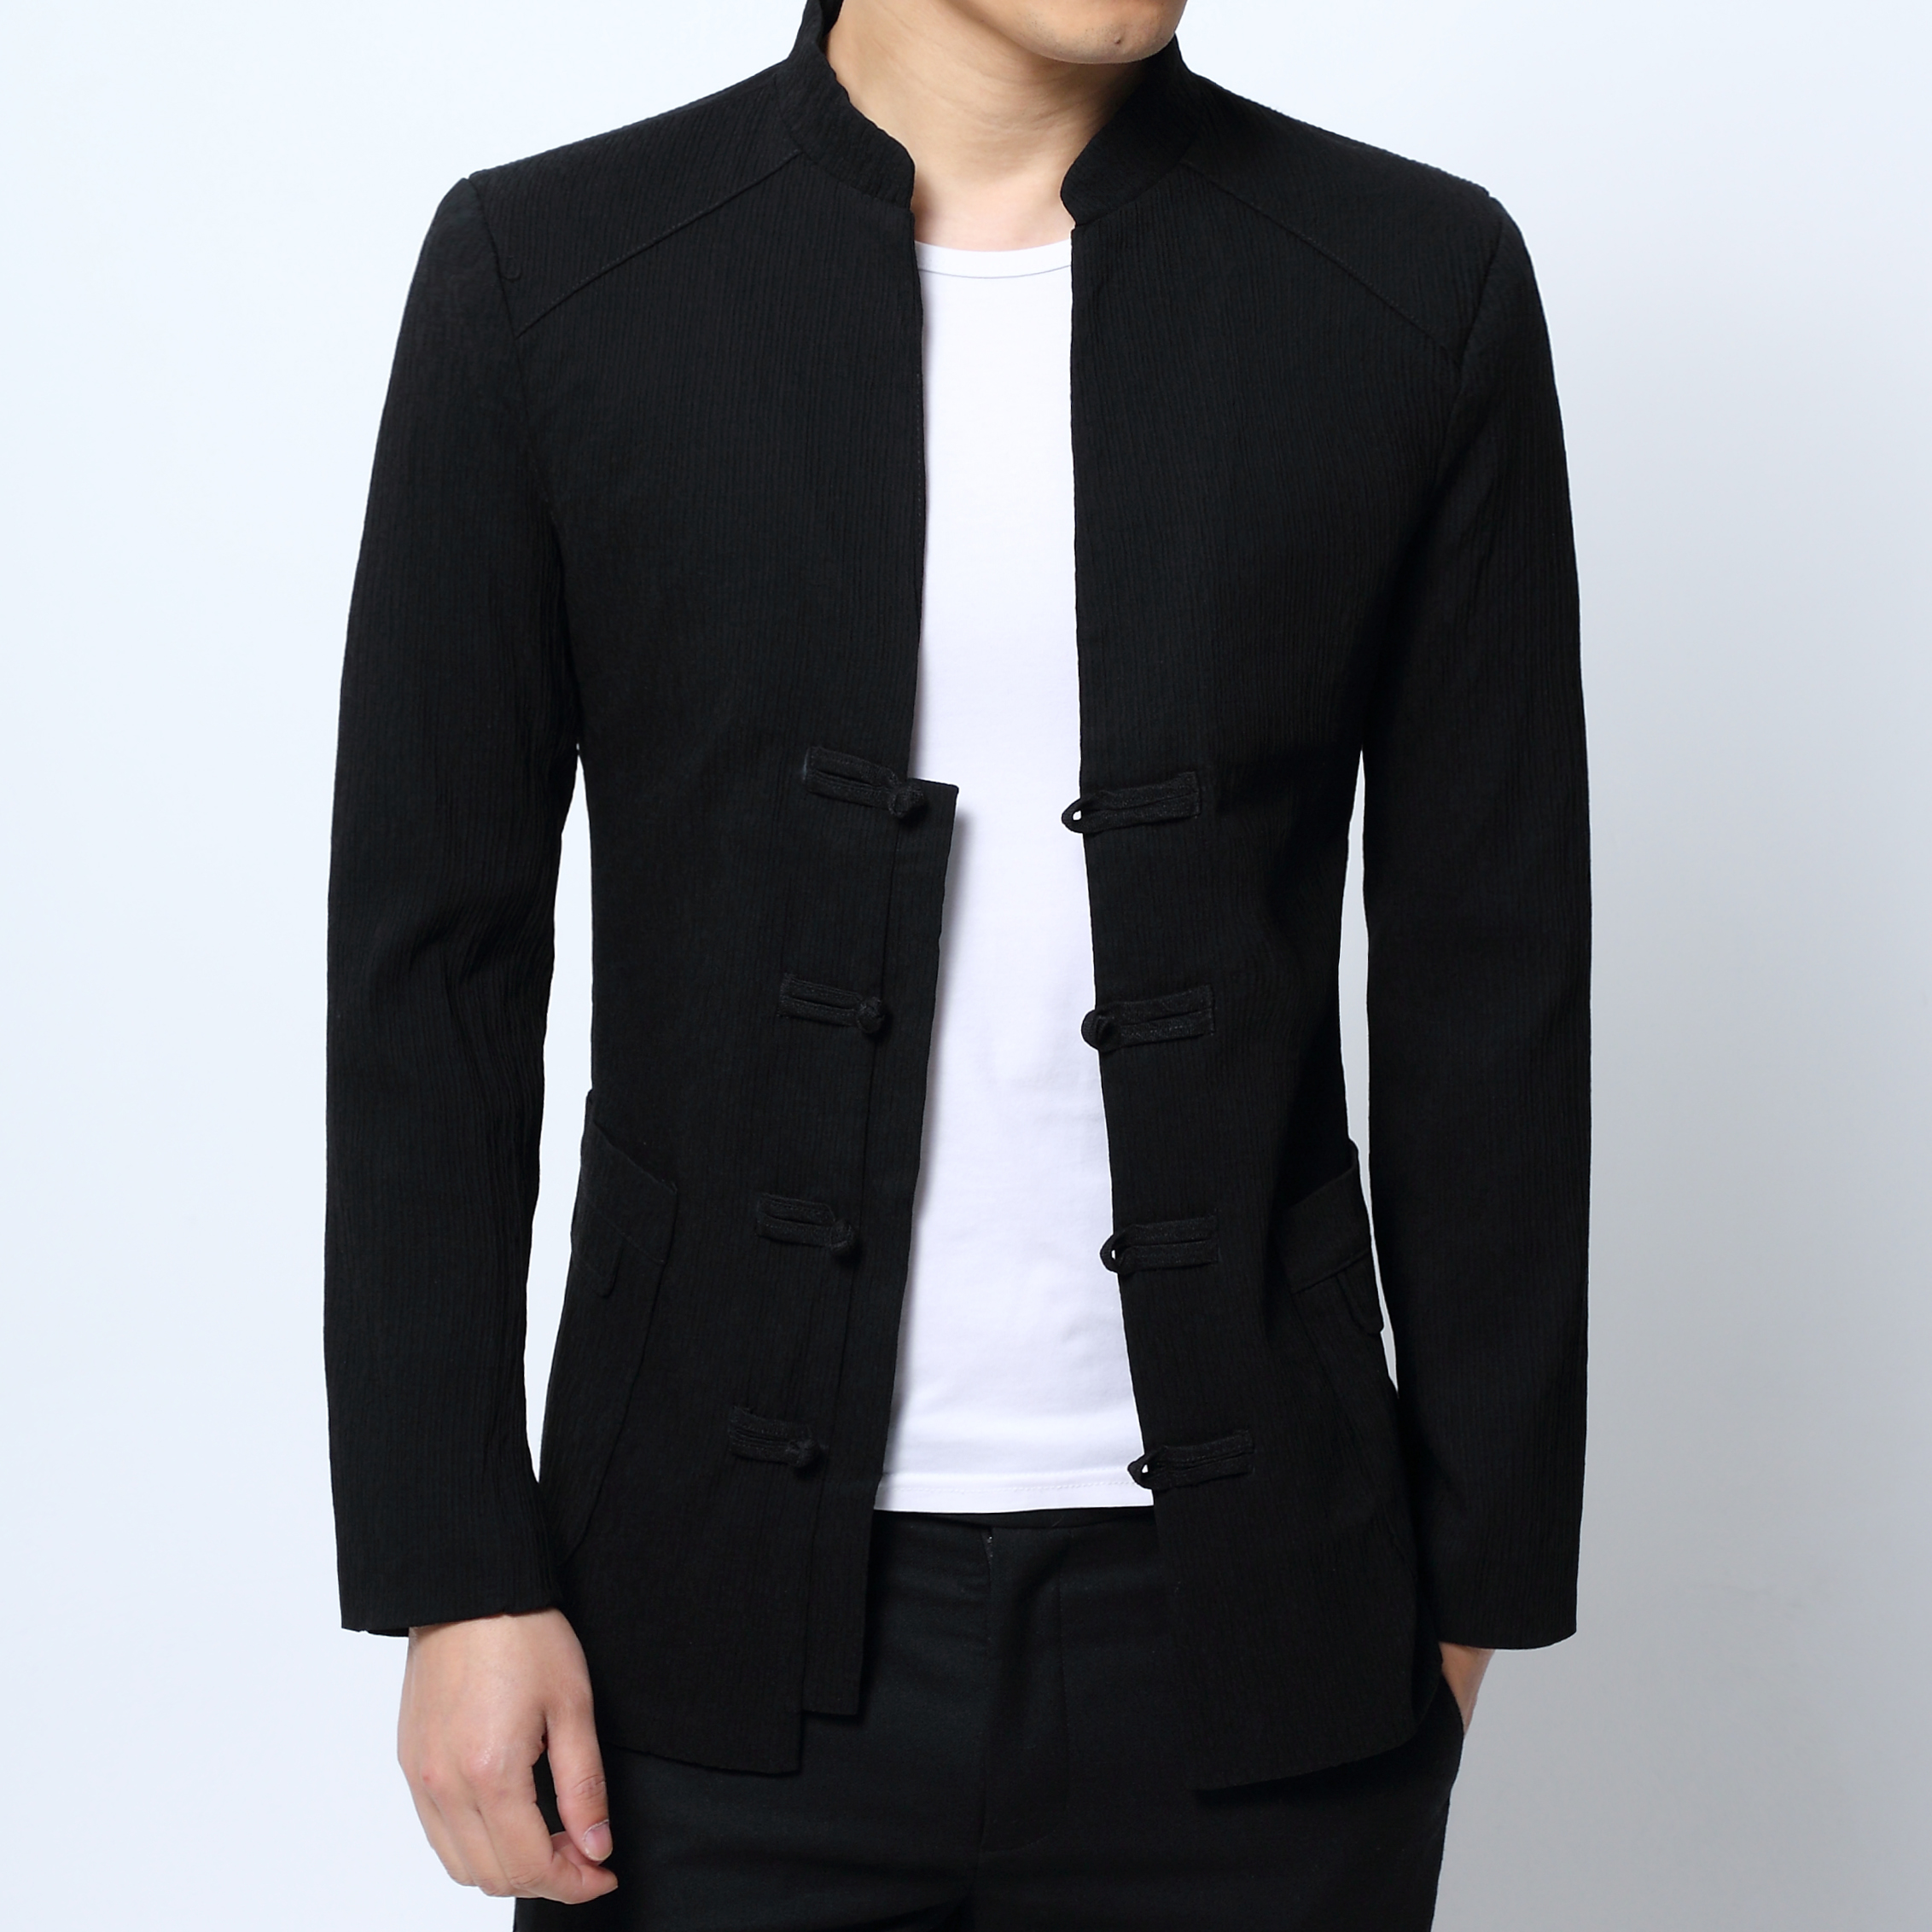 Men's Long Sleeve Jackets, Chinese Retro Style, Black Jacket Men Fashion Casual Male Coats, Size S 4XL